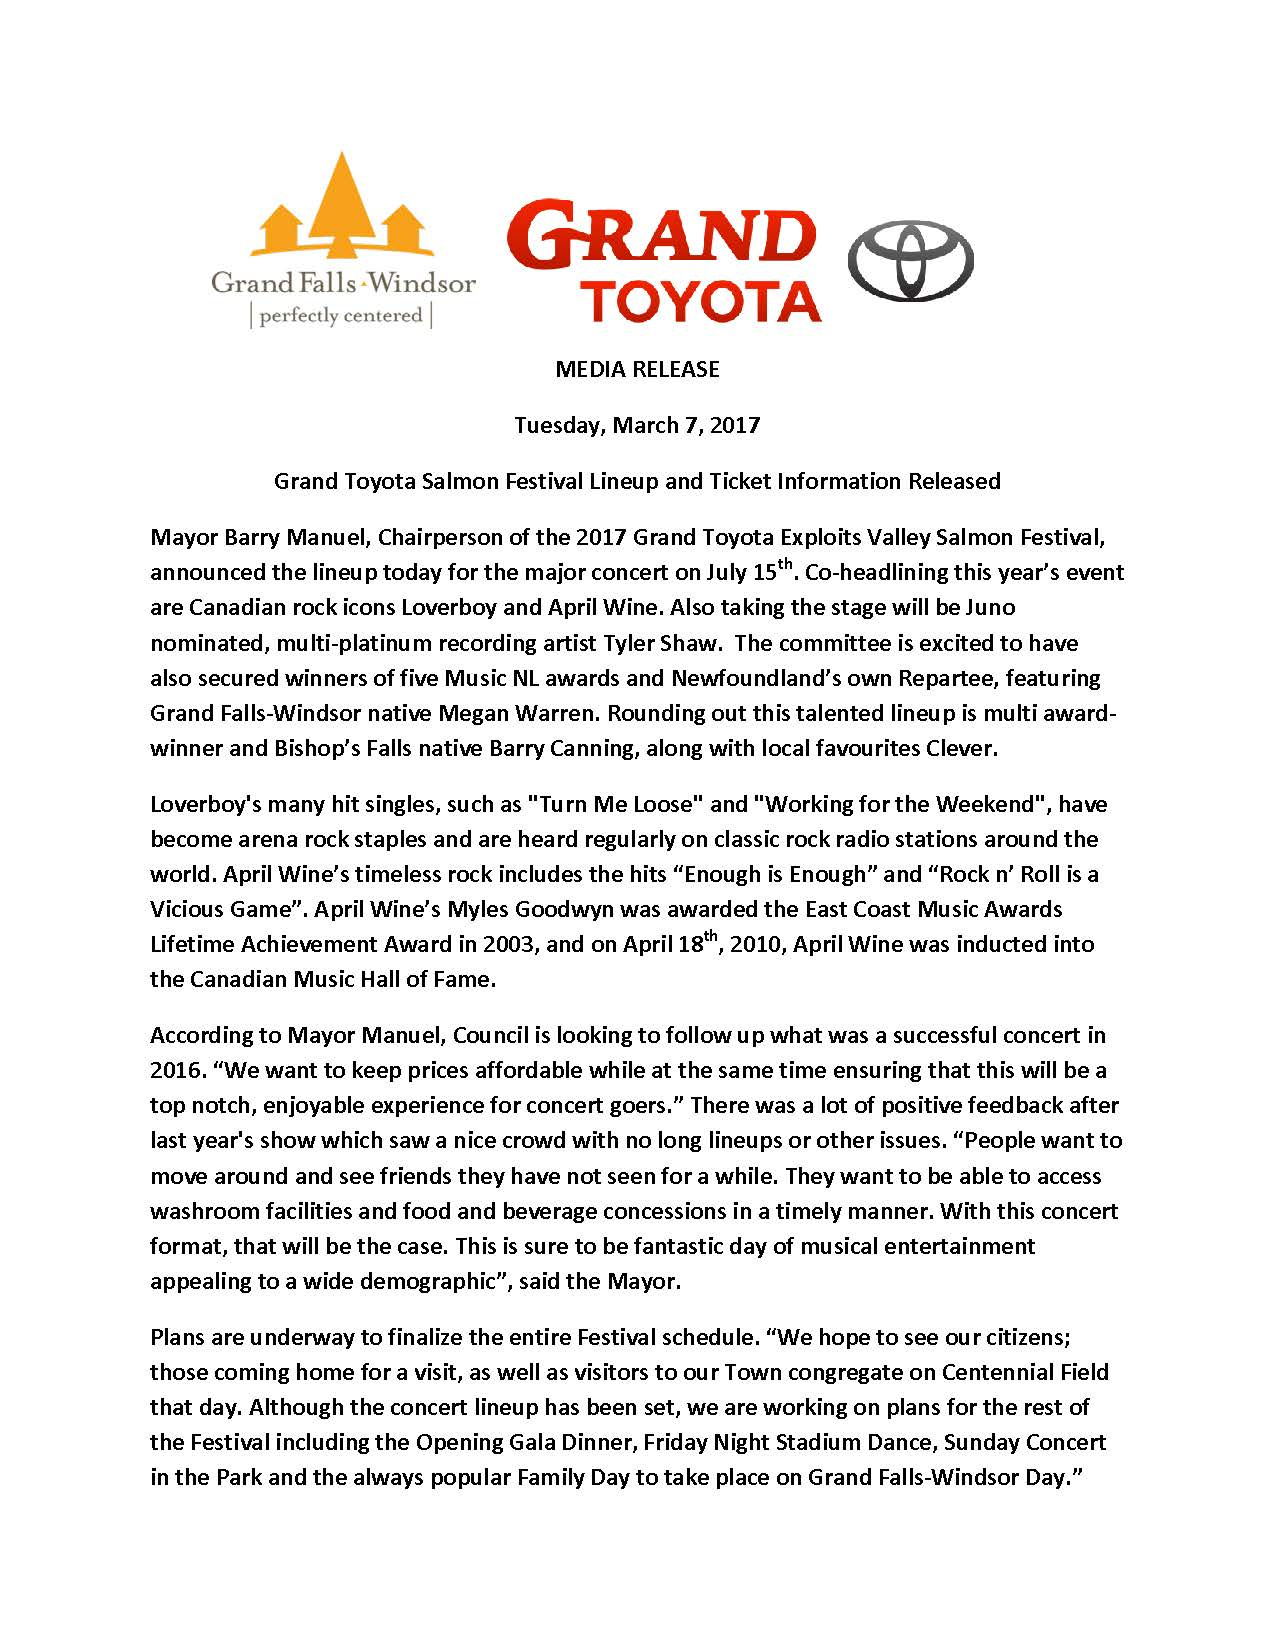 MEDIA RELEASE Salmon Festival Lineup and Ticket Release March 7 2017 Page 1